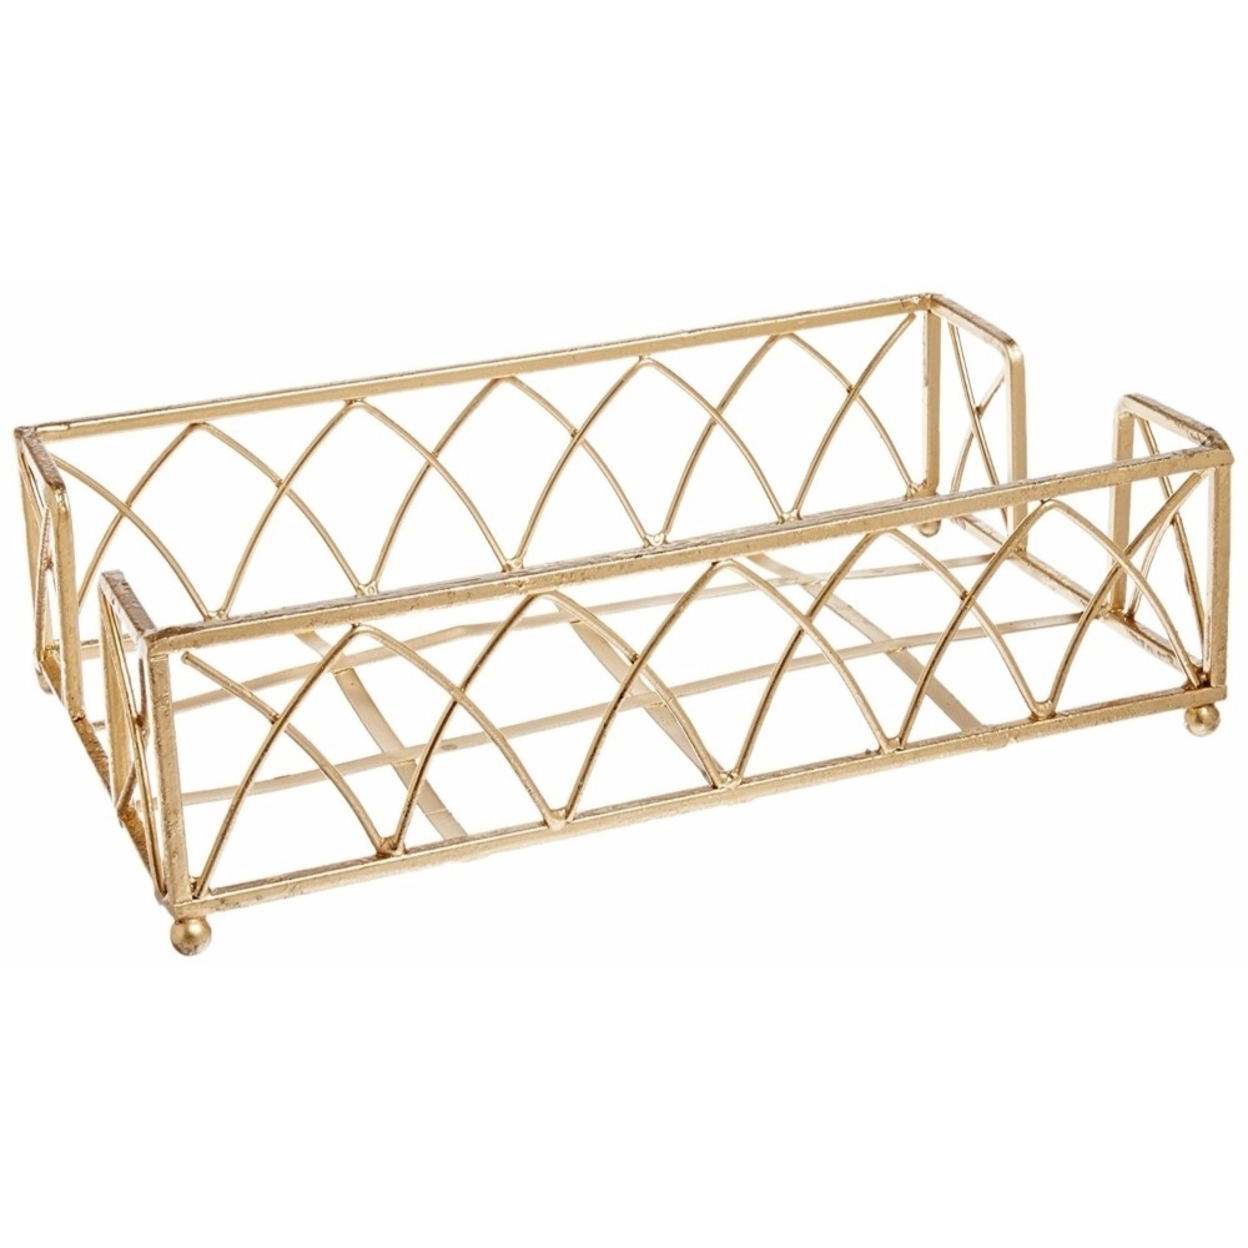 Boston International Guest Towel Caddy, Arch Design in Gold Leaf 59d009afe22461762112e0dc